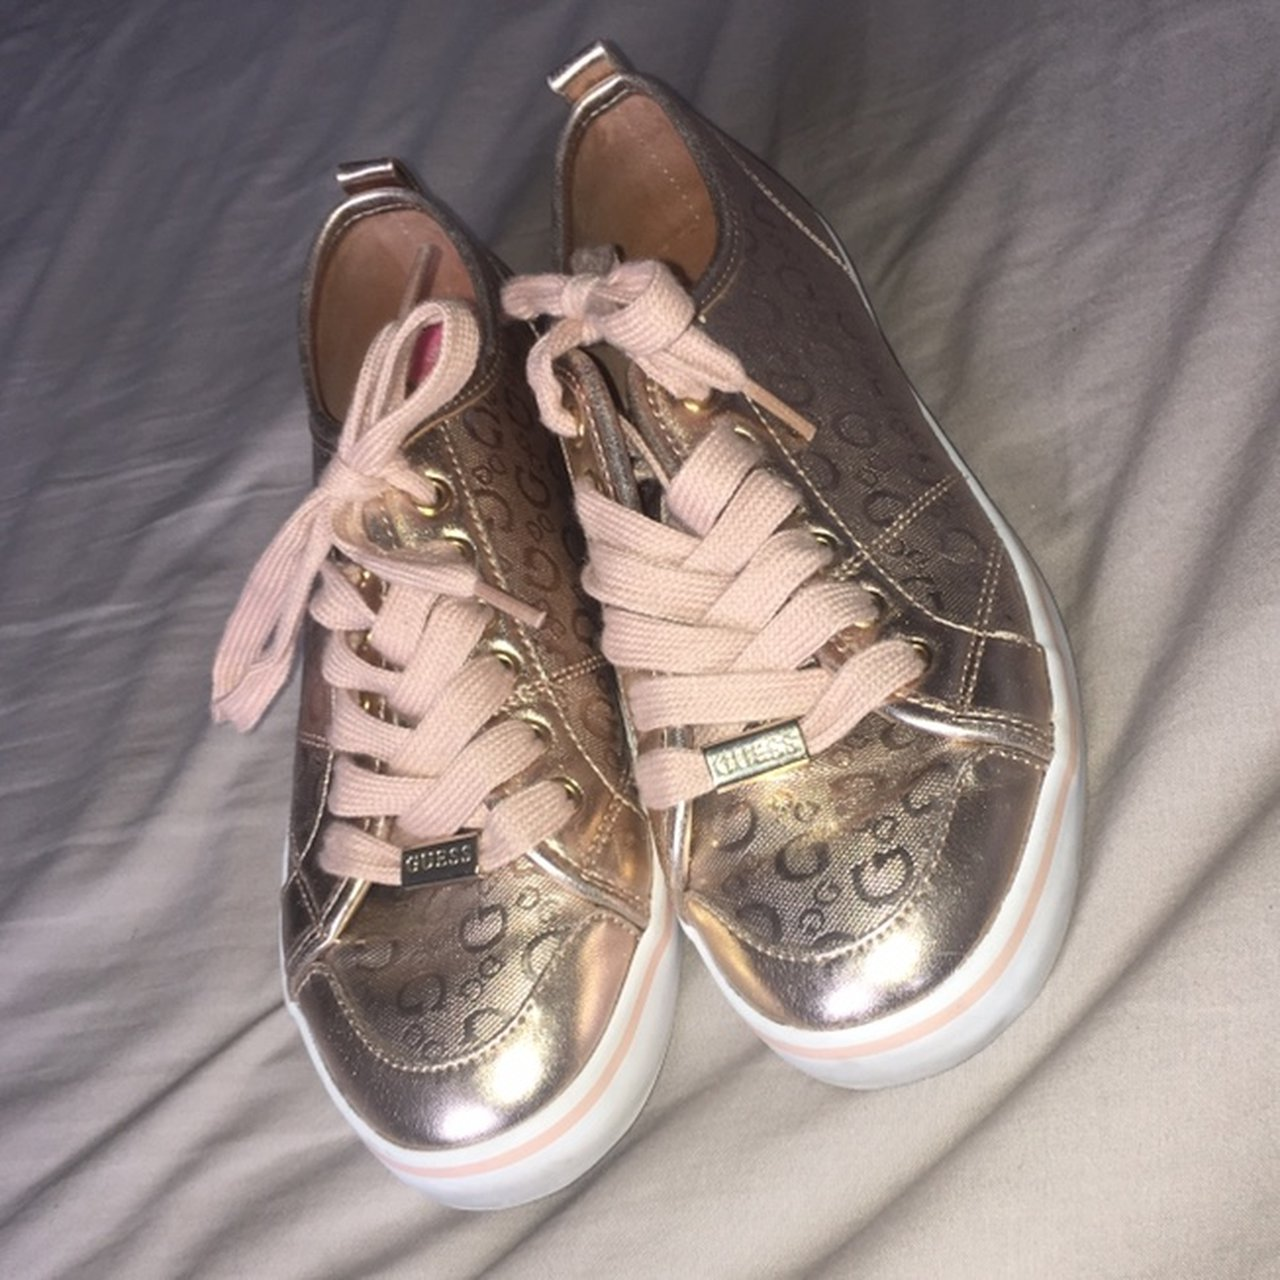 Authentic Guess rose gold shoes Bought